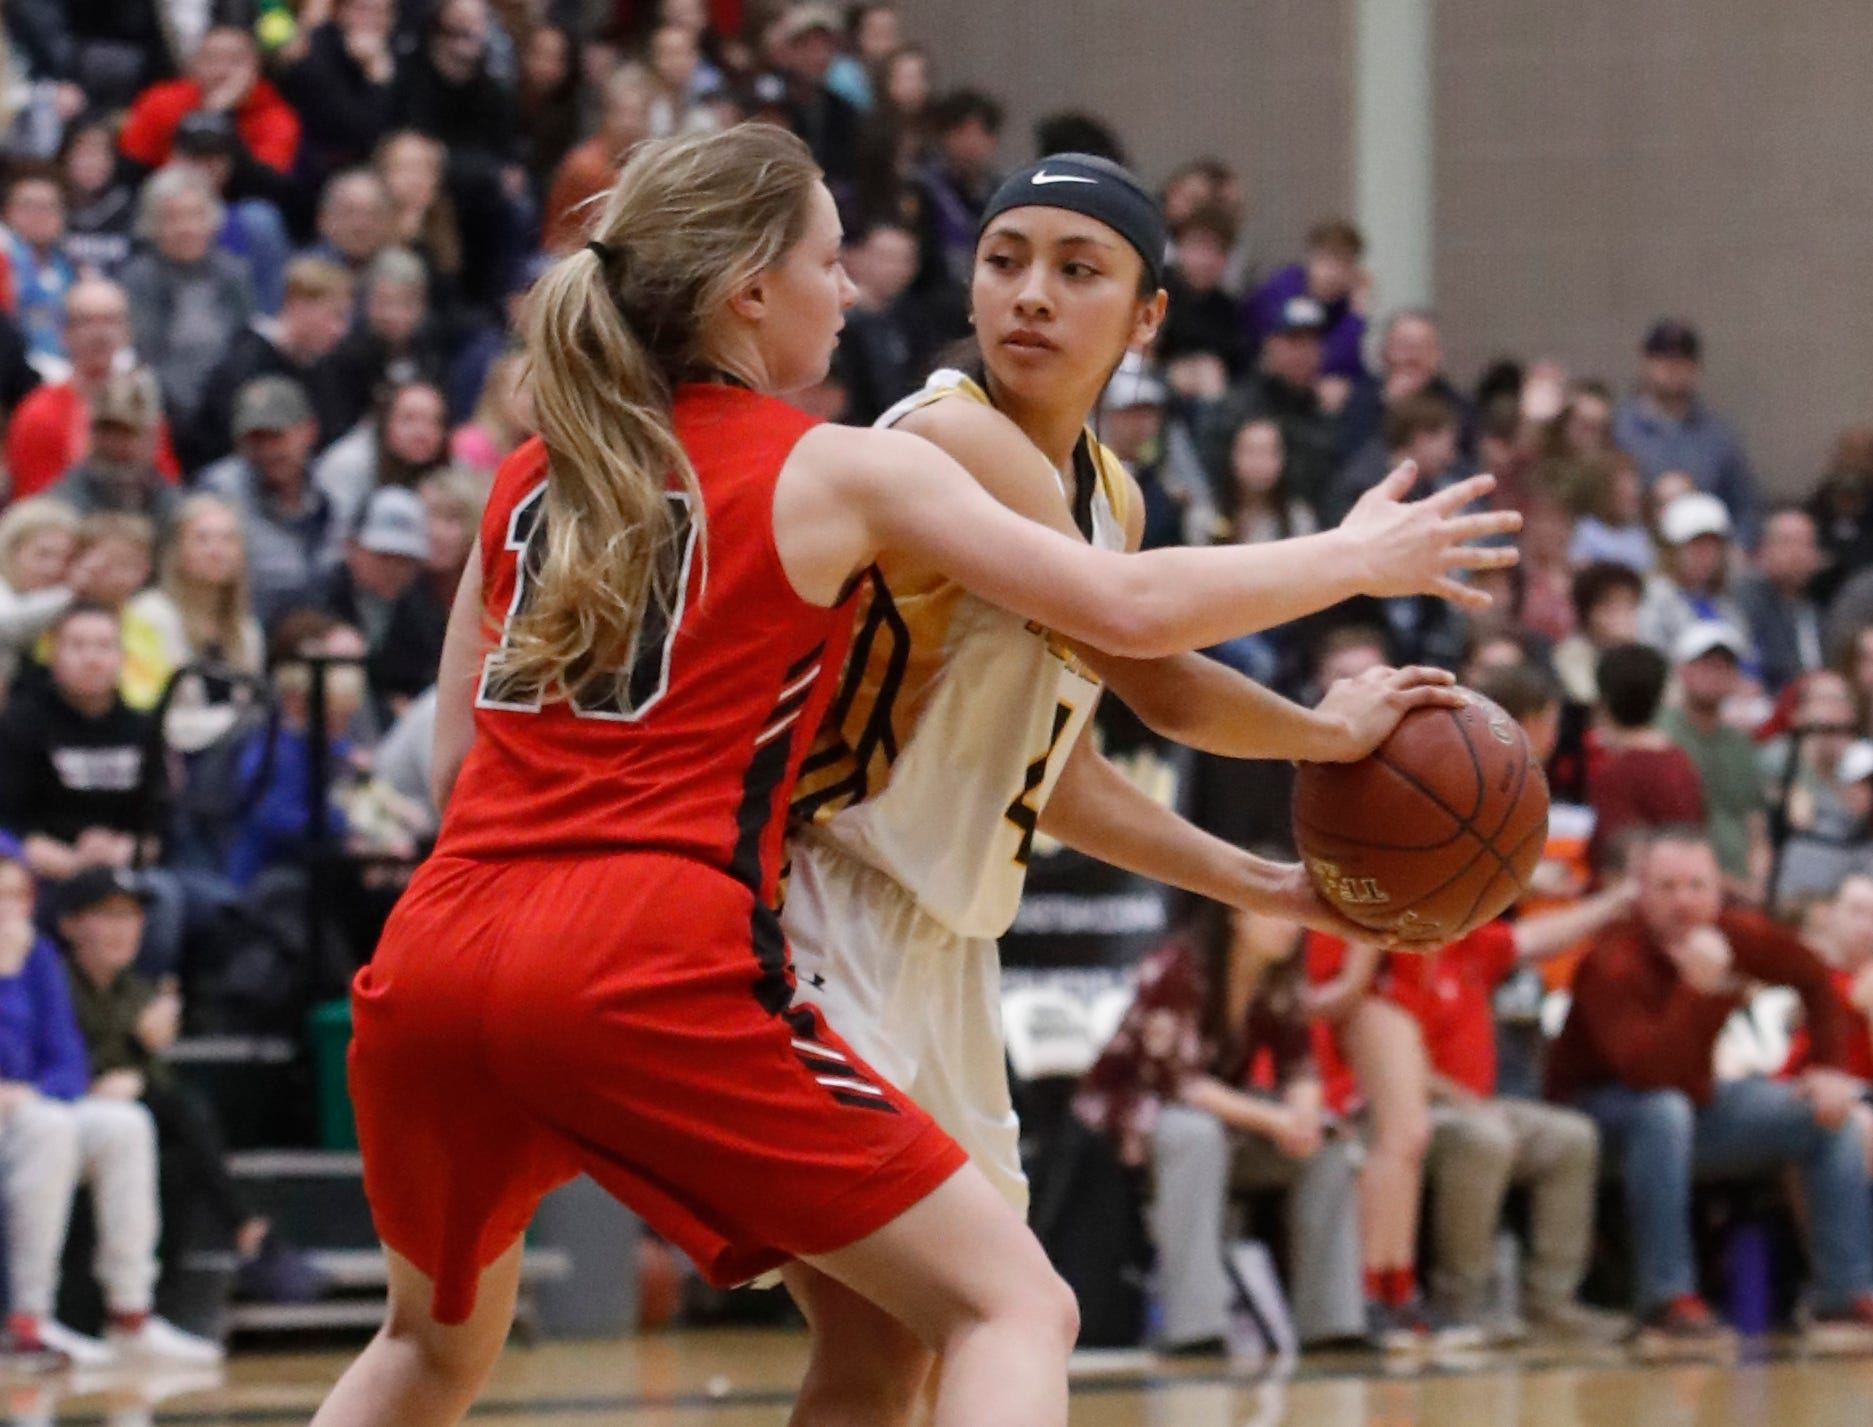 Enterprise beat Foothill 71-50 to win the Division III Northern Section championship at Shasta College on Saturday, Feb. 23.